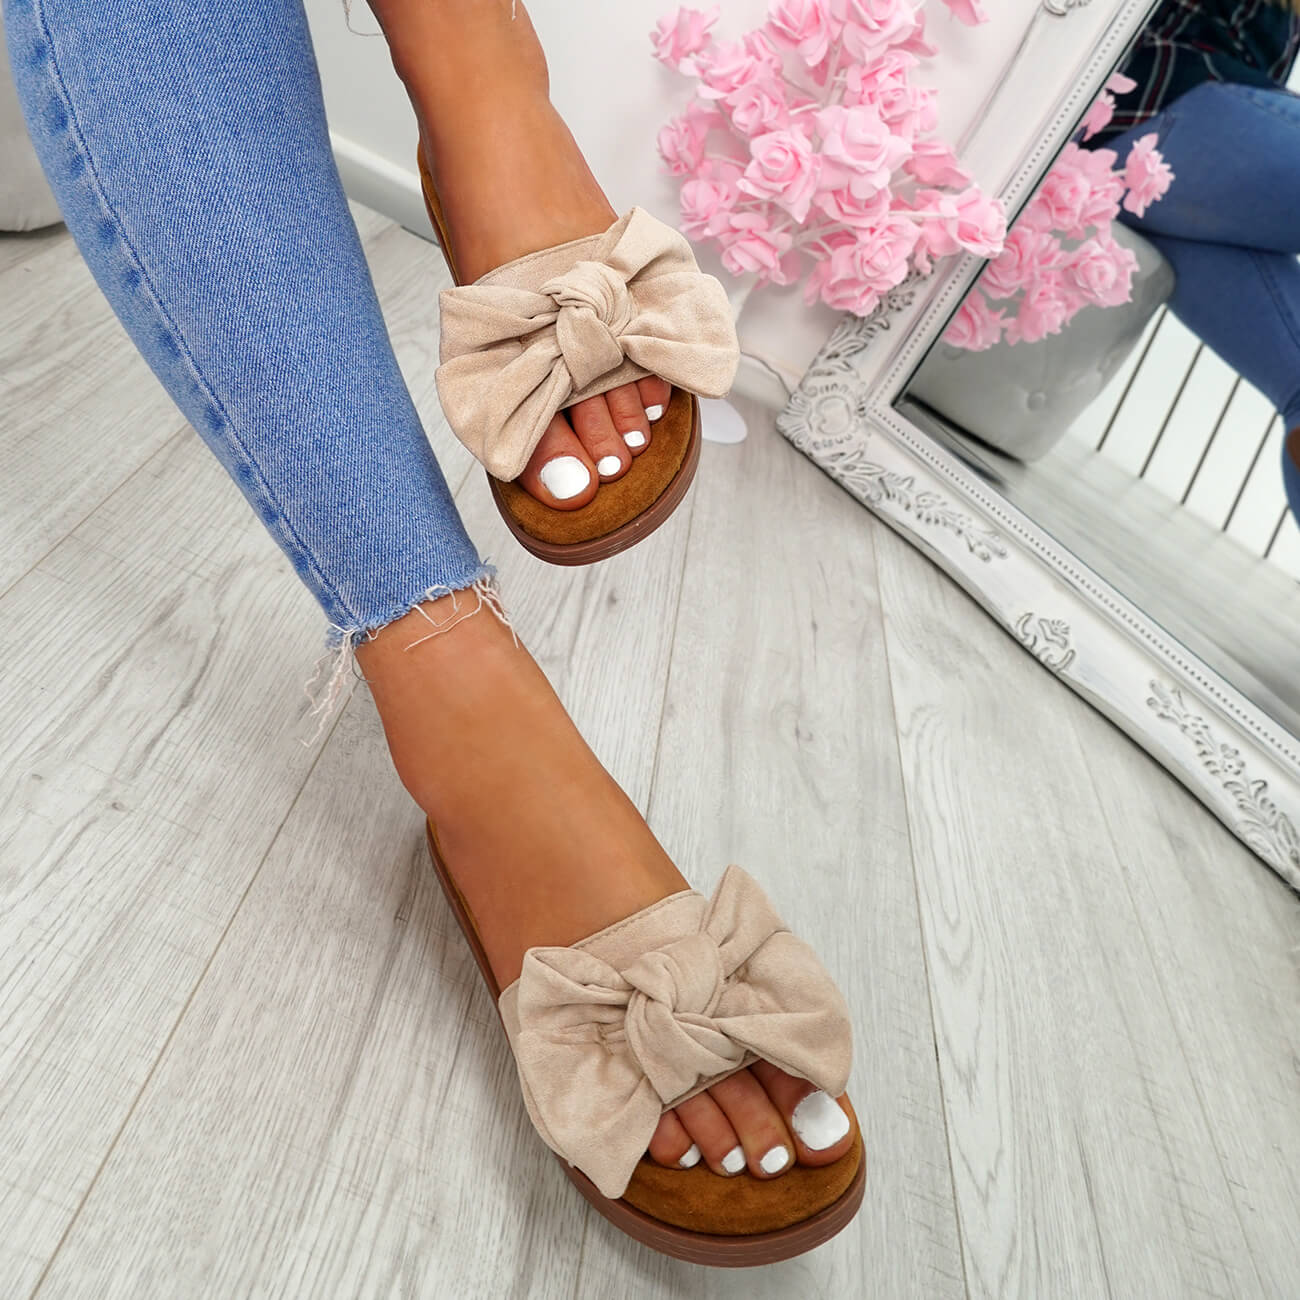 WOMENS-LADIES-FLAT-SANDALS-FRONT-BOW-COMFY-SUMMER-CASUAL-HOLIDAY-SHOES-SIZE-UK thumbnail 8